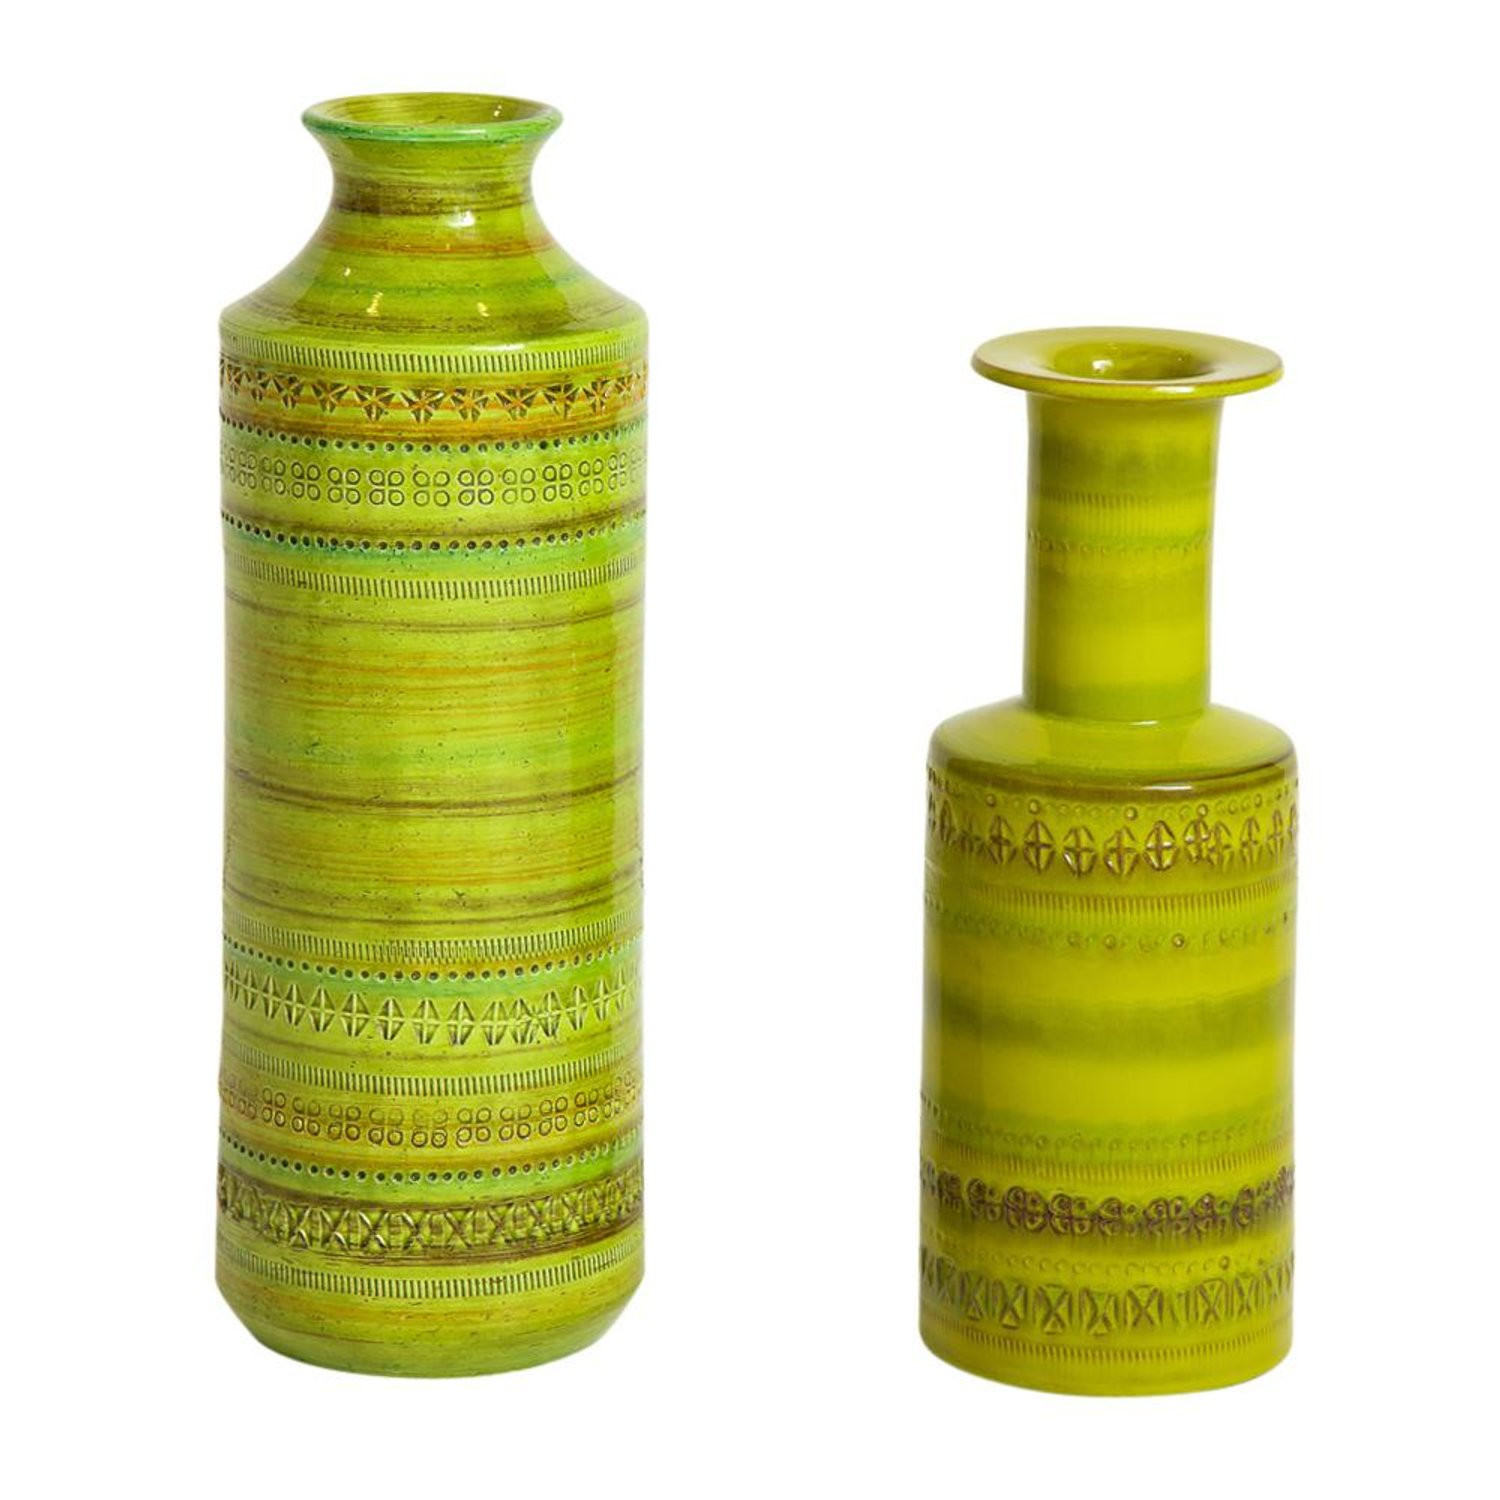 cheap tall skinny glass vases of bitossi ceramic vase rosenthal netter chartreuse signed italy 1960s within bitossi ceramic vase rosenthal netter chartreuse signed italy 1960s for sale at 1stdibs